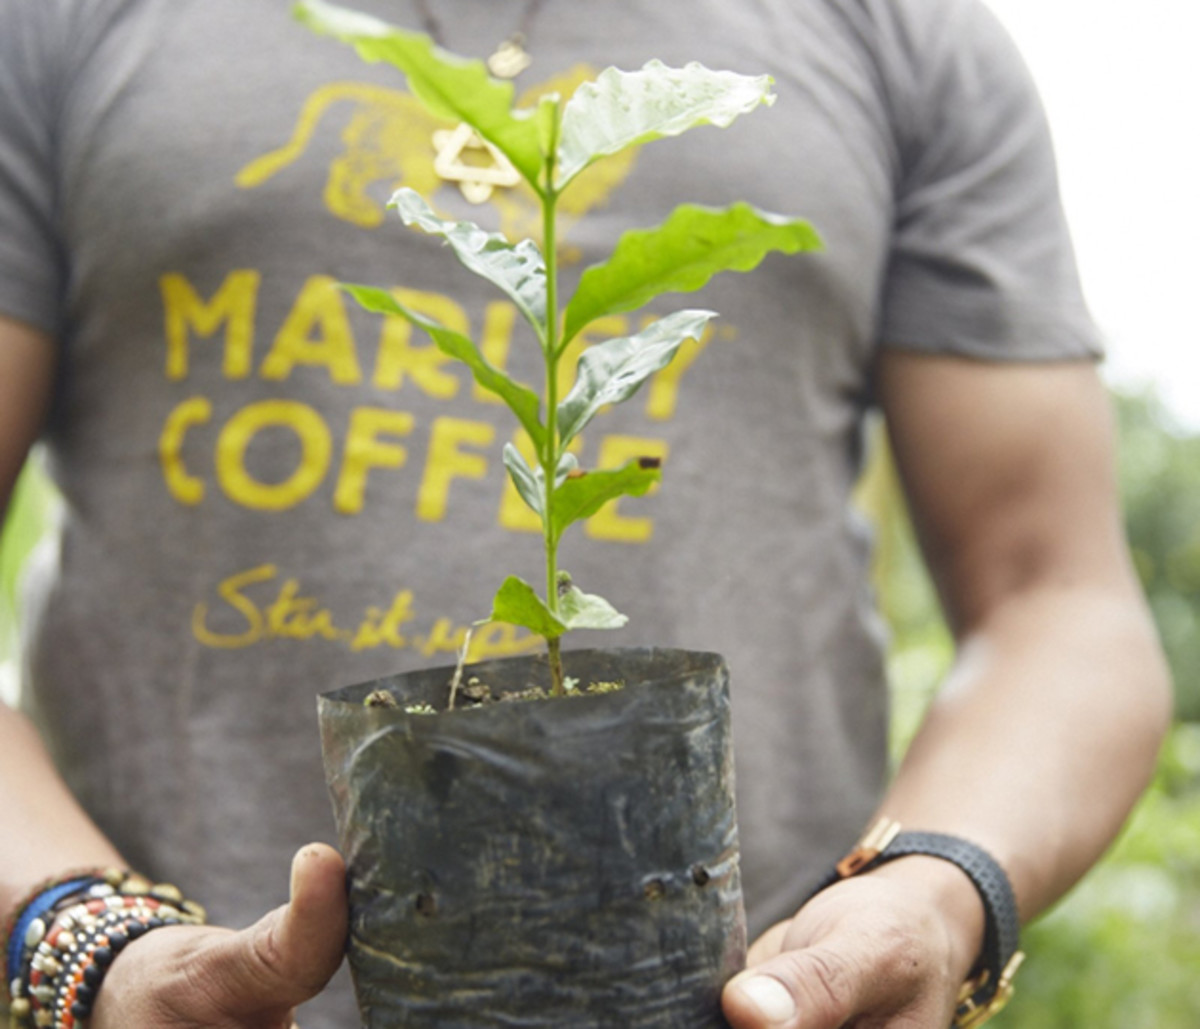 Marley Coffee is a $5.6 million-per-year business that produces artisan-roasted-gourmet coffee.